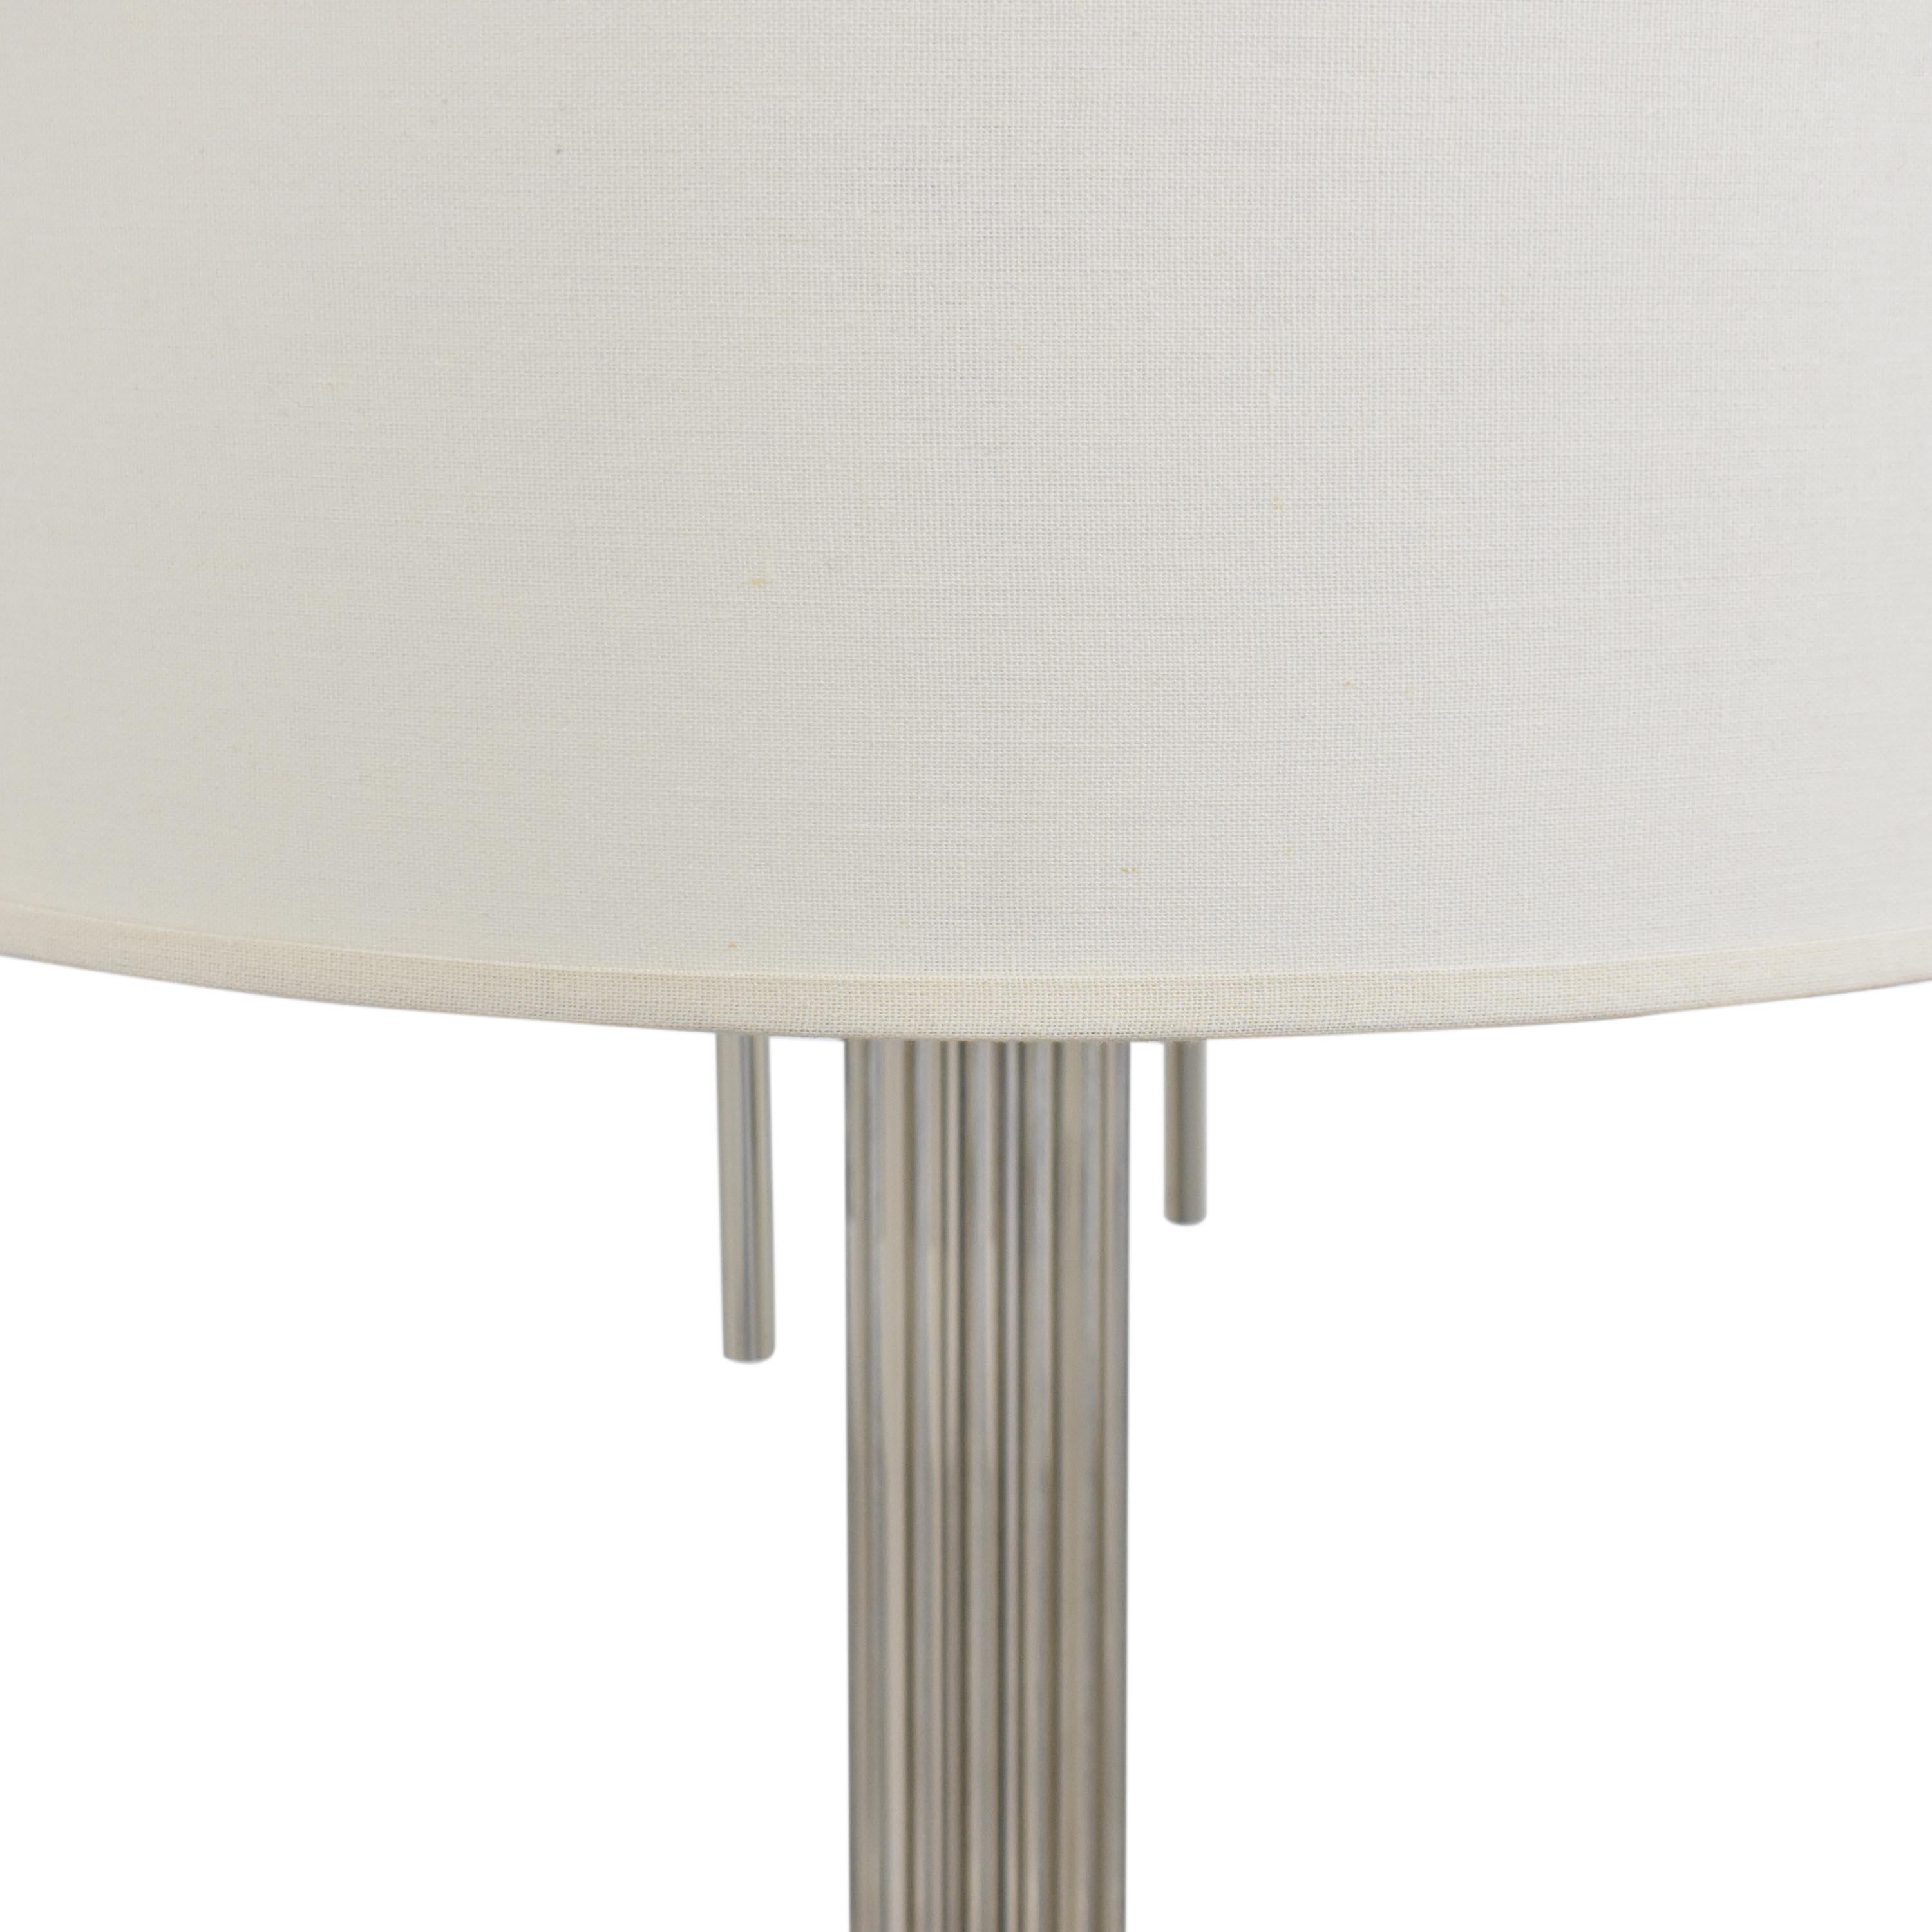 Restoration Hardware Restoration Hardware Davenport Table Lamp dimensions